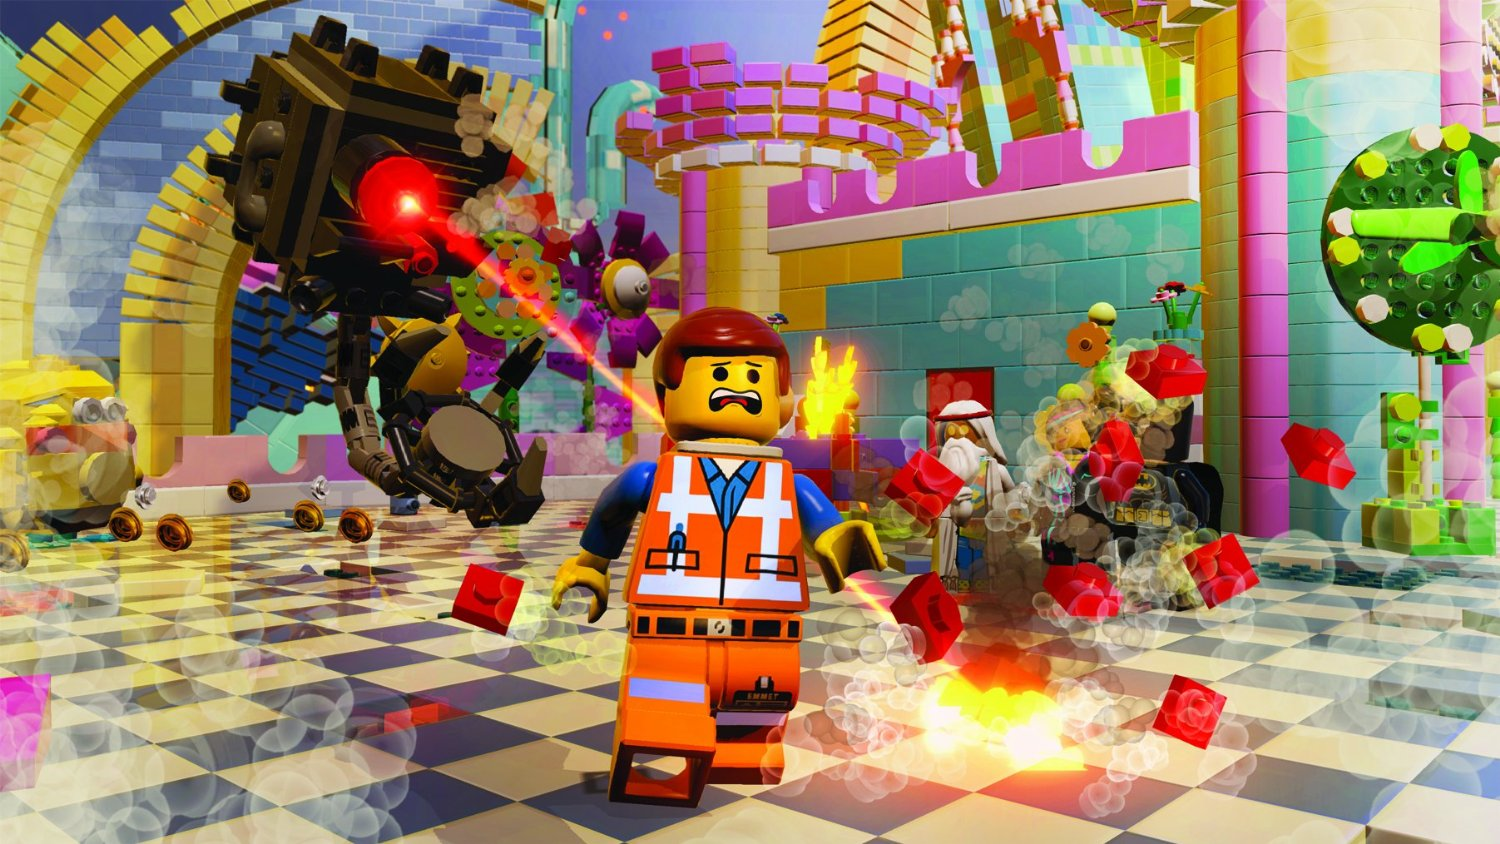 Lego Movie Videogame screens show Batman, brick explosions ...